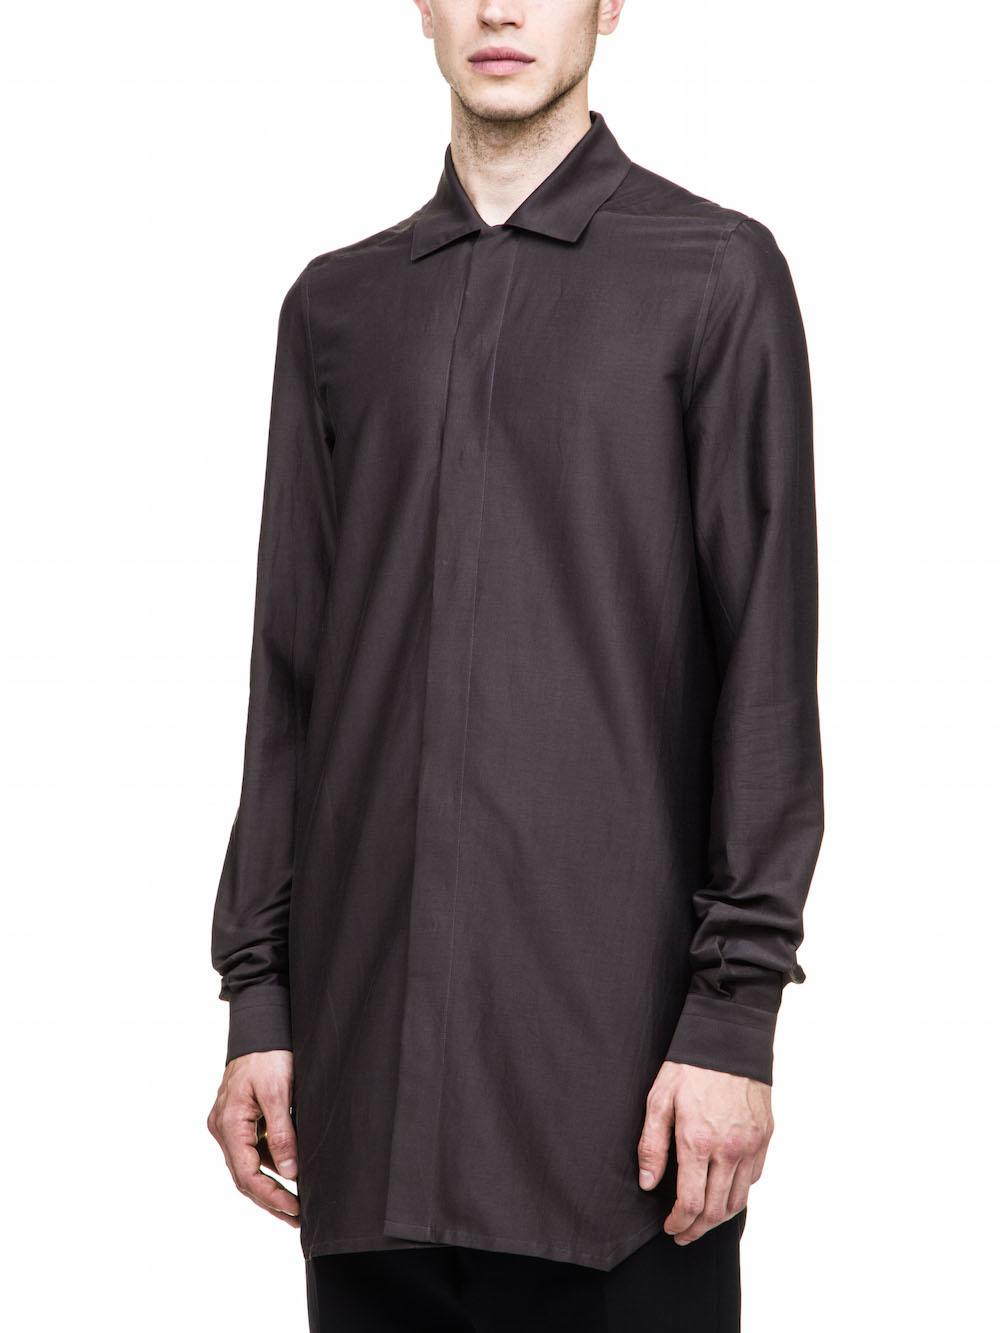 Discount Supply Outlet Store Locations SHIRTS - Shirts Rick Owens IWEWzI